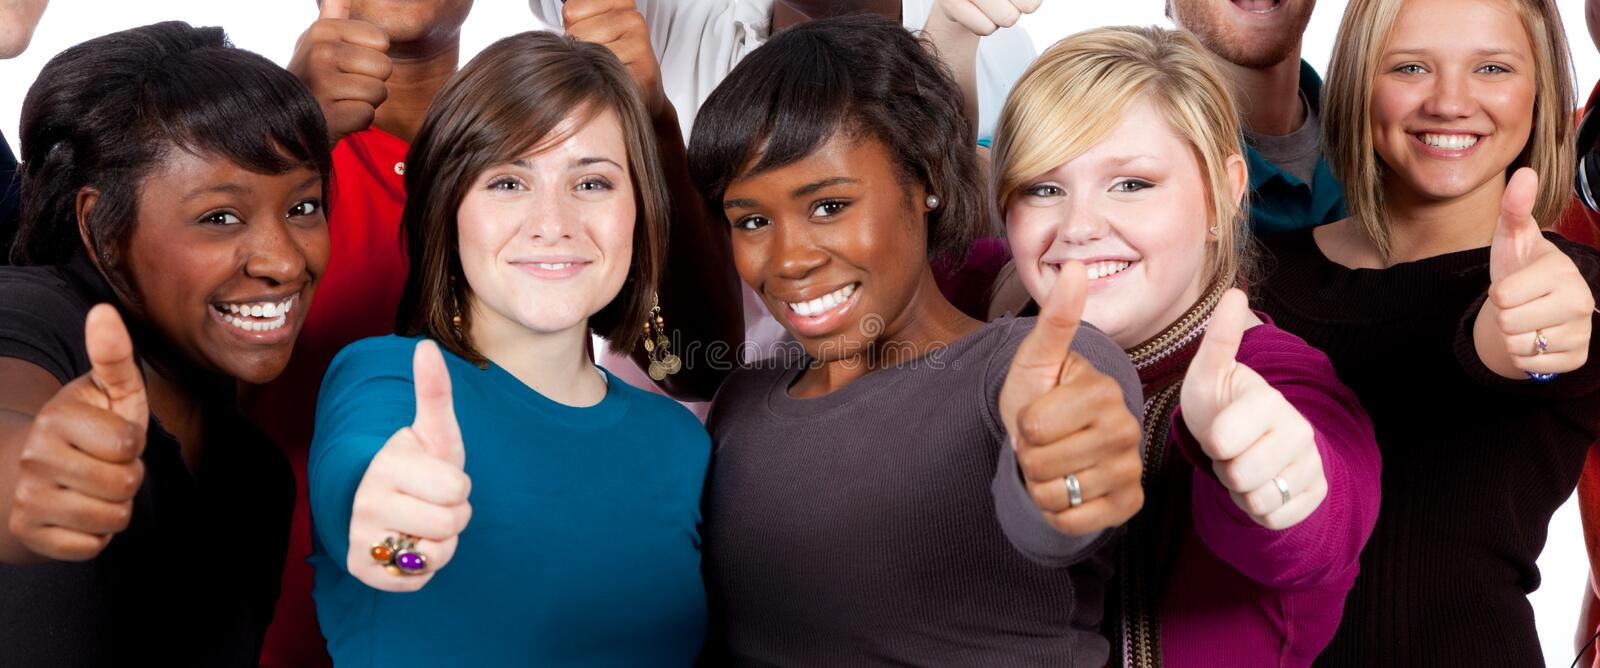 Multi-racial College Students With Thumbs Up Stock Photos